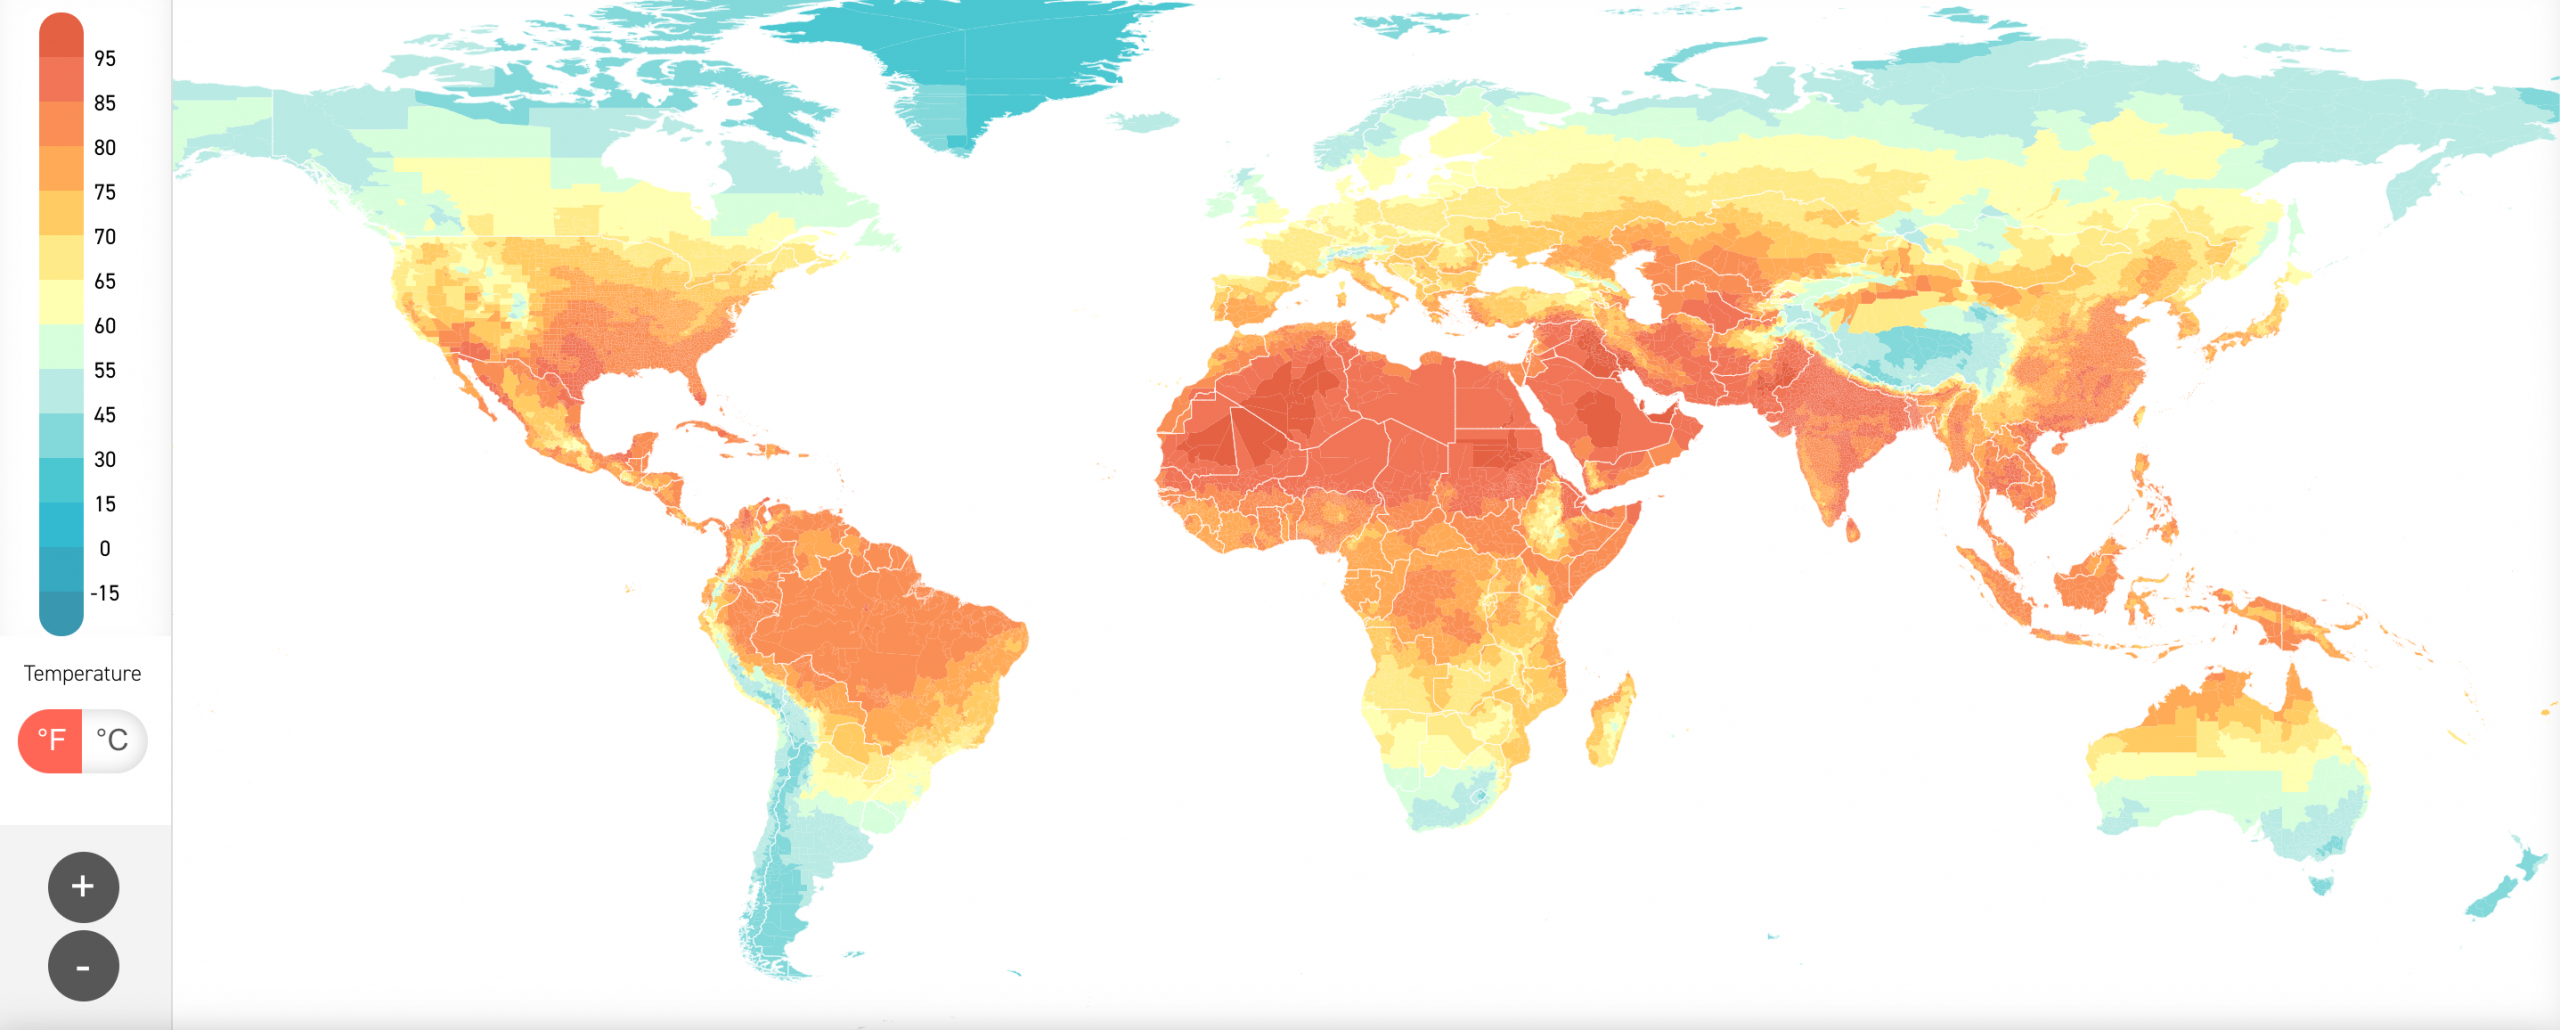 Image from Climate Impact Lab